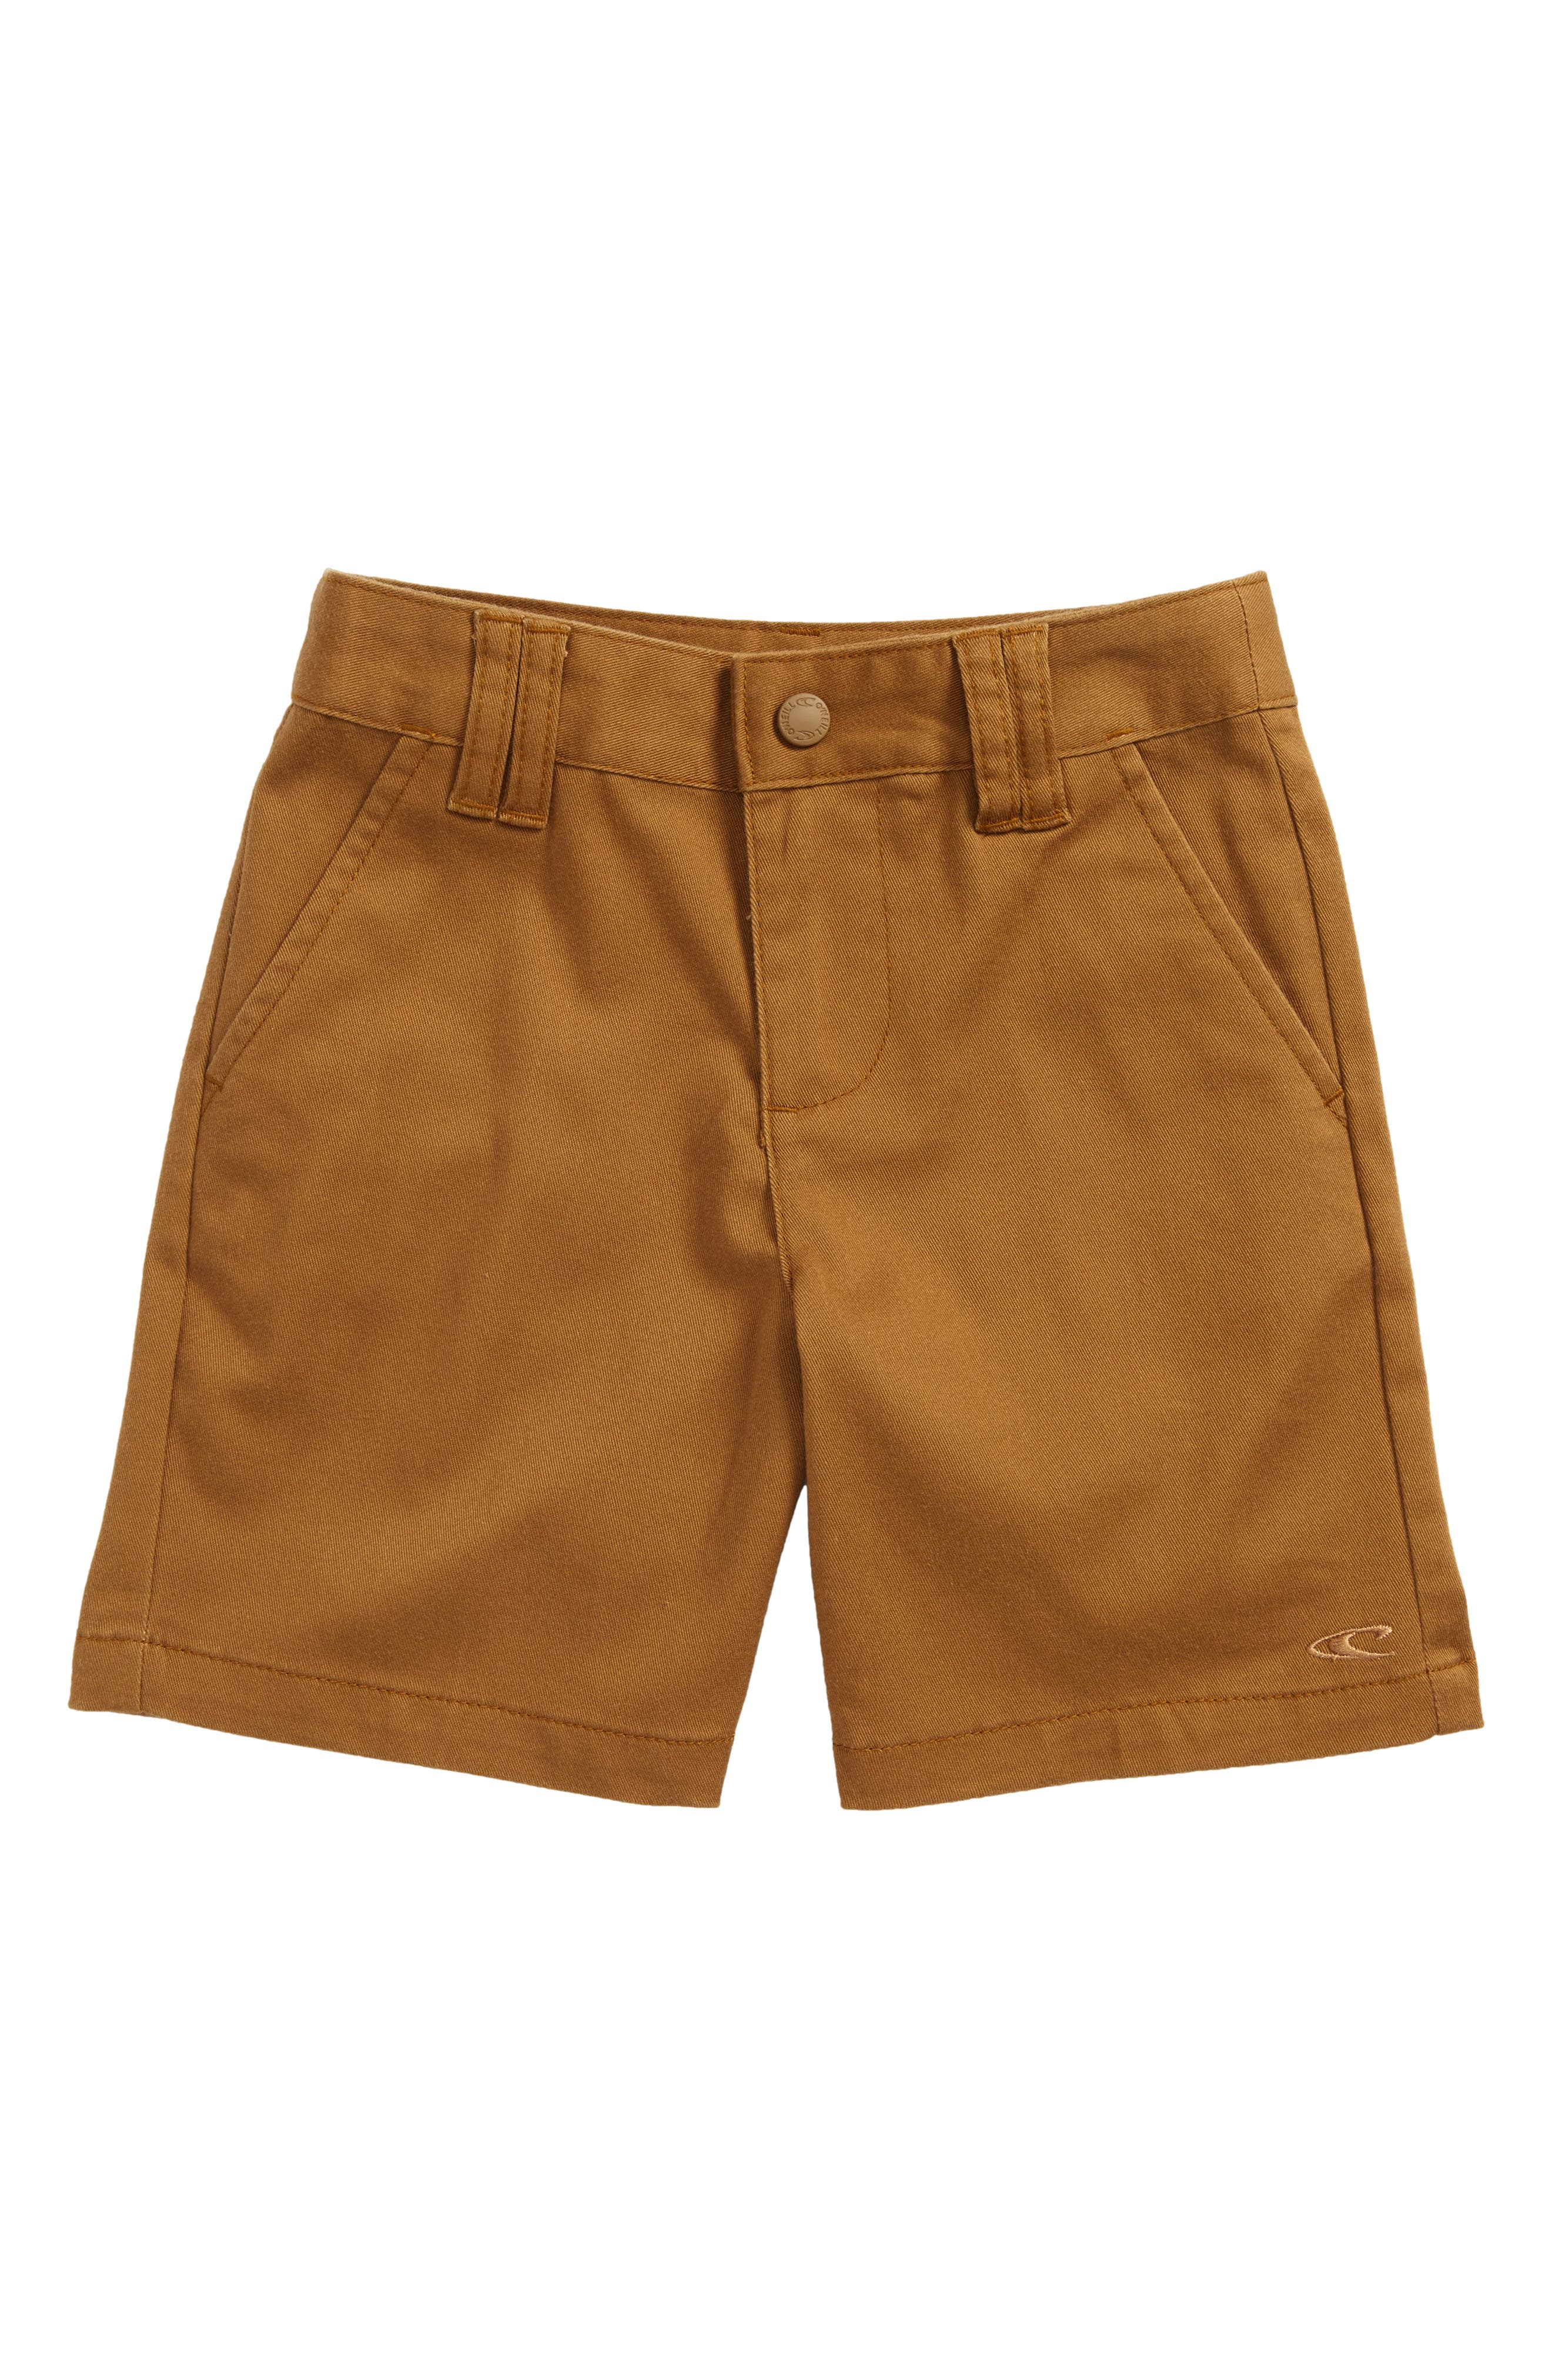 Contact Stretch Shorts,                         Main,                         color,